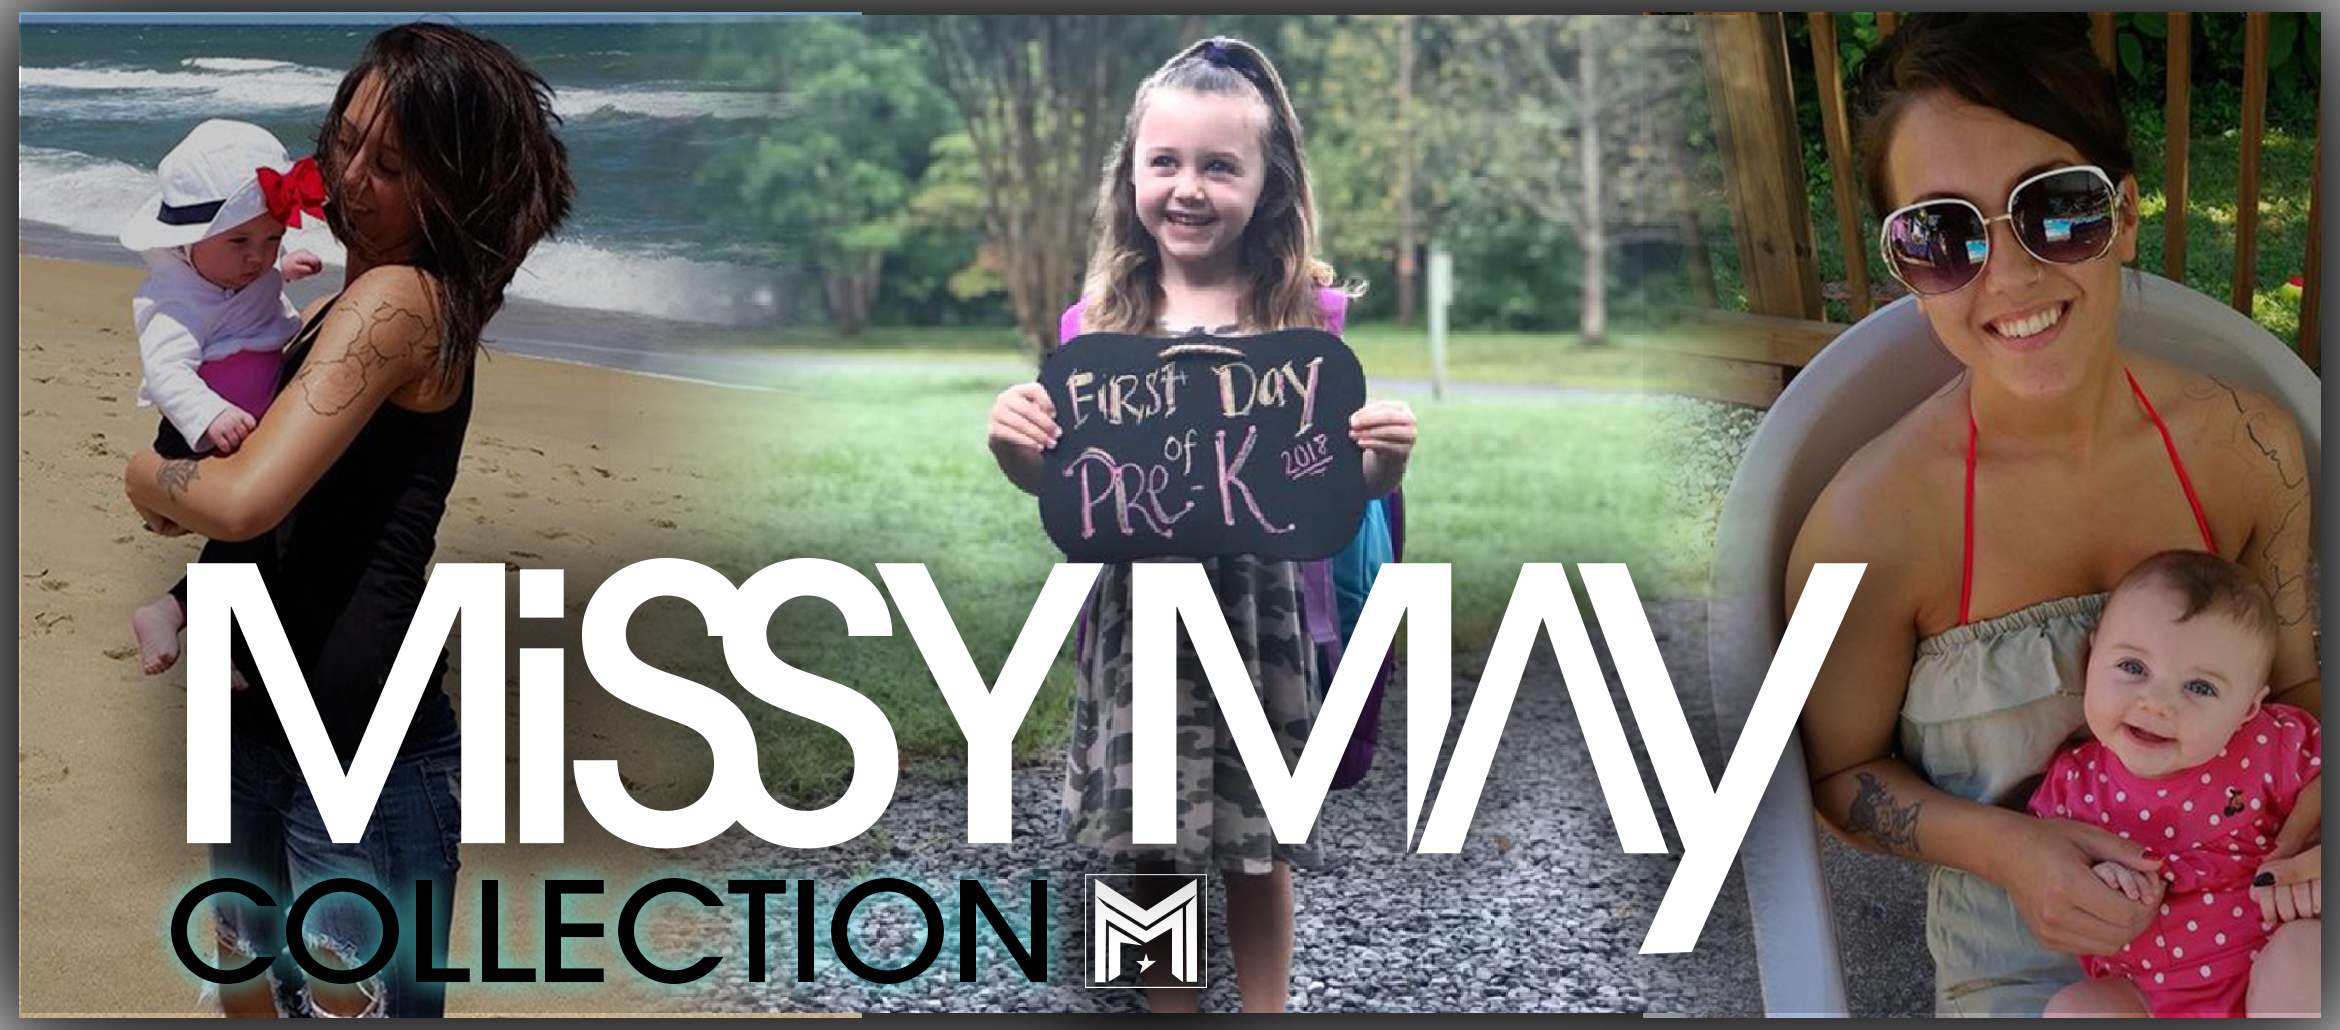 Missy May Collection Banner.jpg